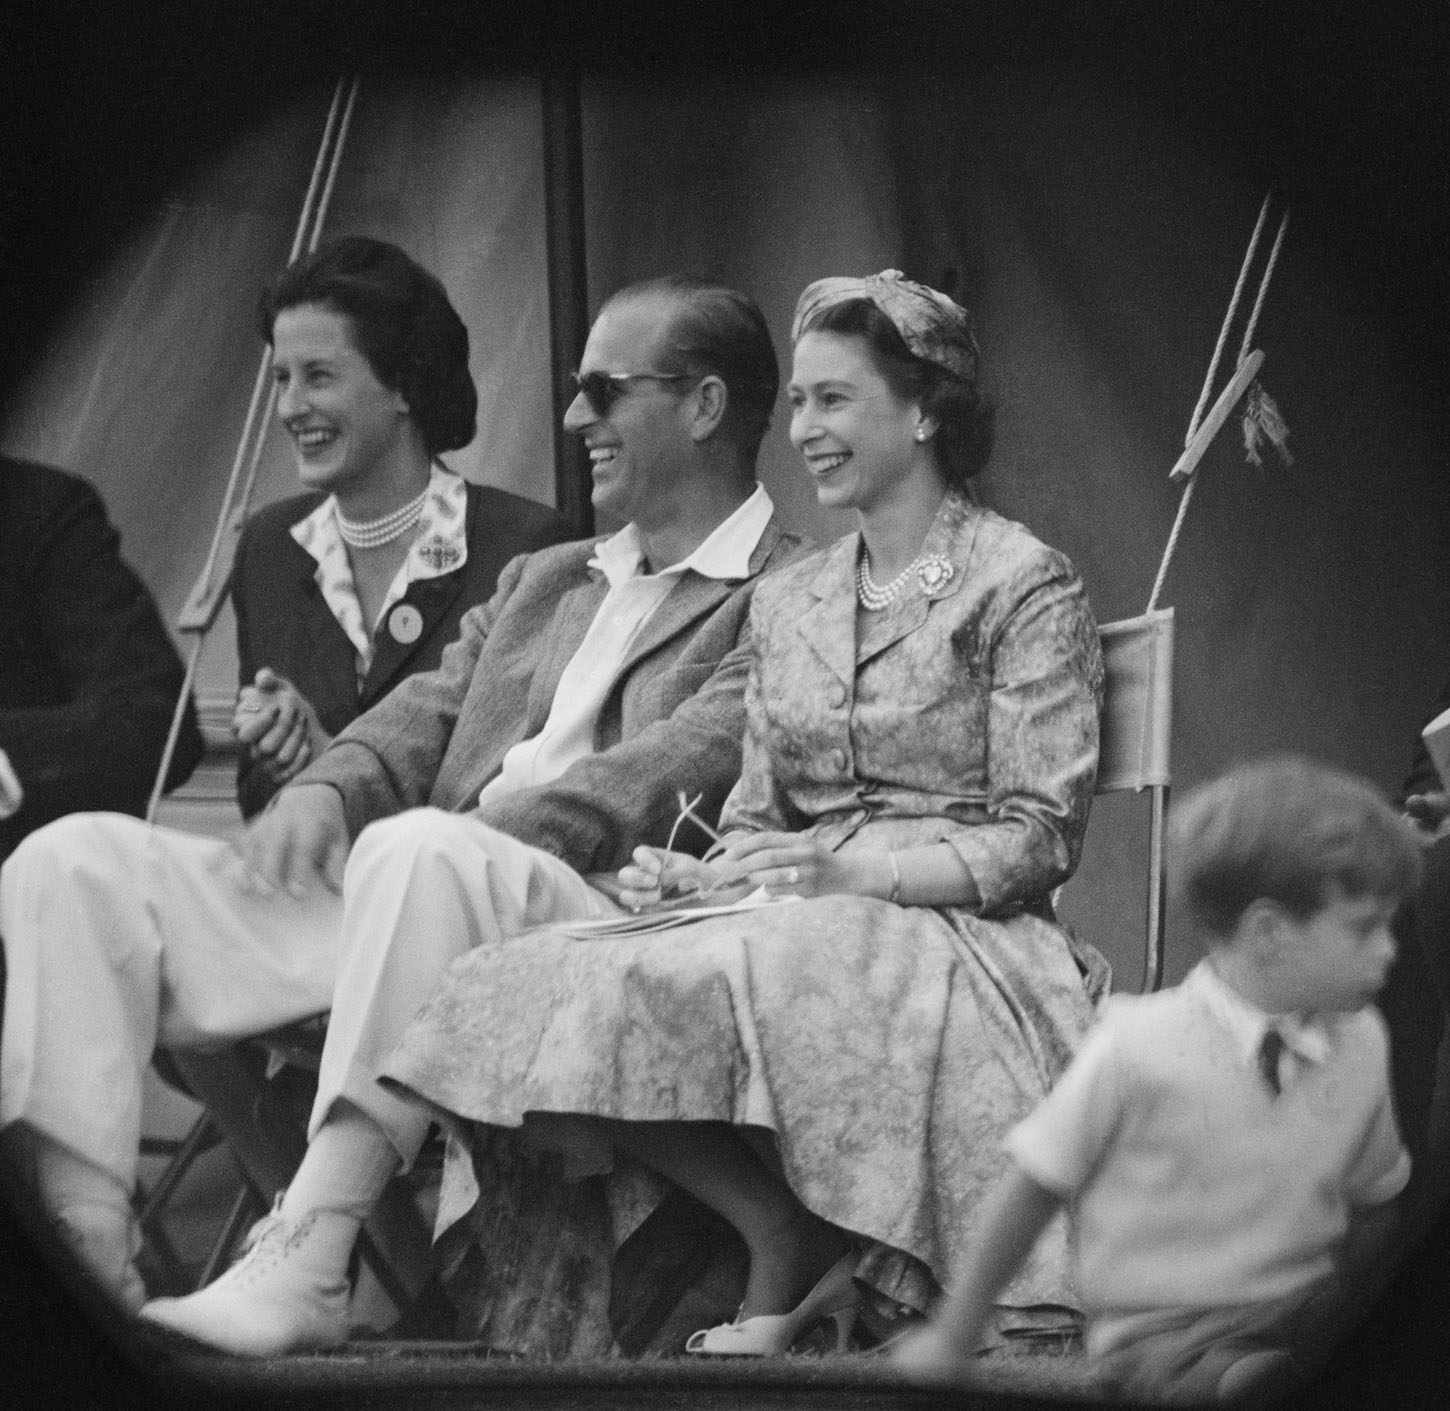 Queen Elizabeth II and Prince Philip, Duke of Edinburgh watch a cricket match at Highclere Castle, Highclere, Hampshire, 3rd August 1958.  (Photo by Victor Blackman/Daily Express/Hulton Archive/Getty Images)